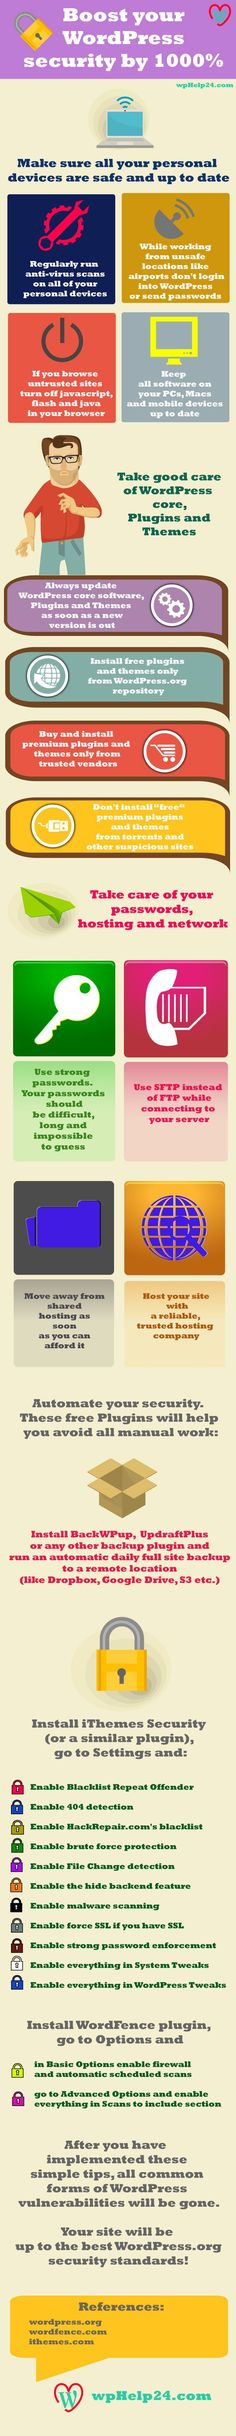 """Infographic: How to protect your WordPress site from hackers and boost security by 1000 %. Don't install """"free""""premium WordPress pluginsand themes from torrents andother suspicious sites. Host your #WordPress #site witha reliable and trusted hostingcompany. Learn more..."""